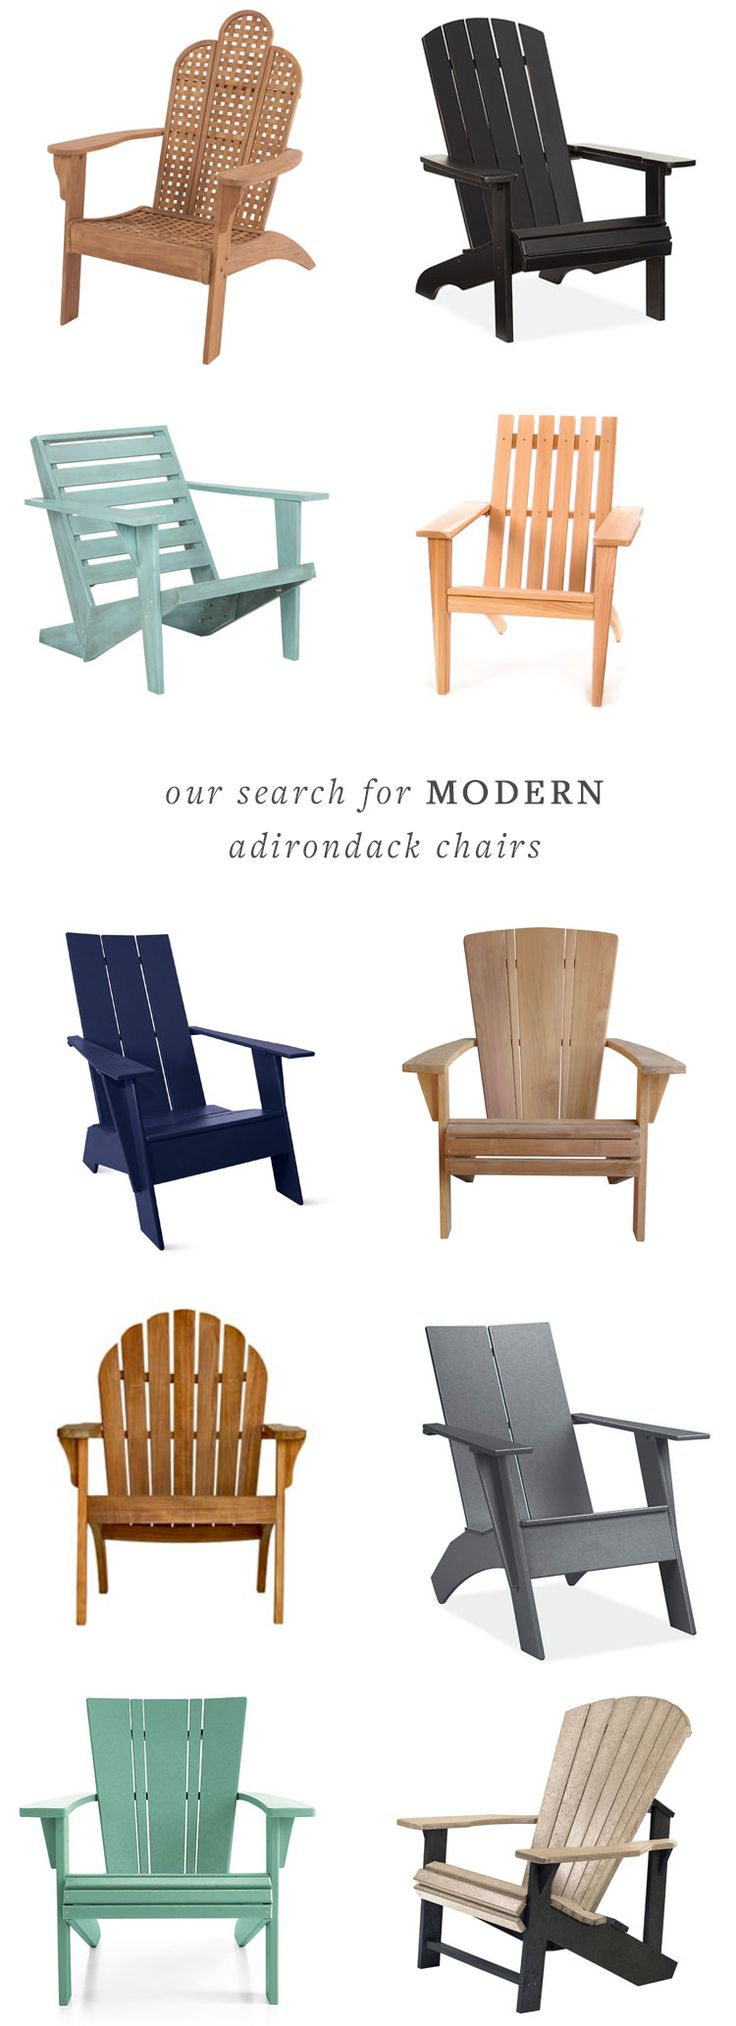 our search for modern adirondack chairs, the perfect addition for summertime entertaining on the deck or patio. via jojotastic, jojotastic.com